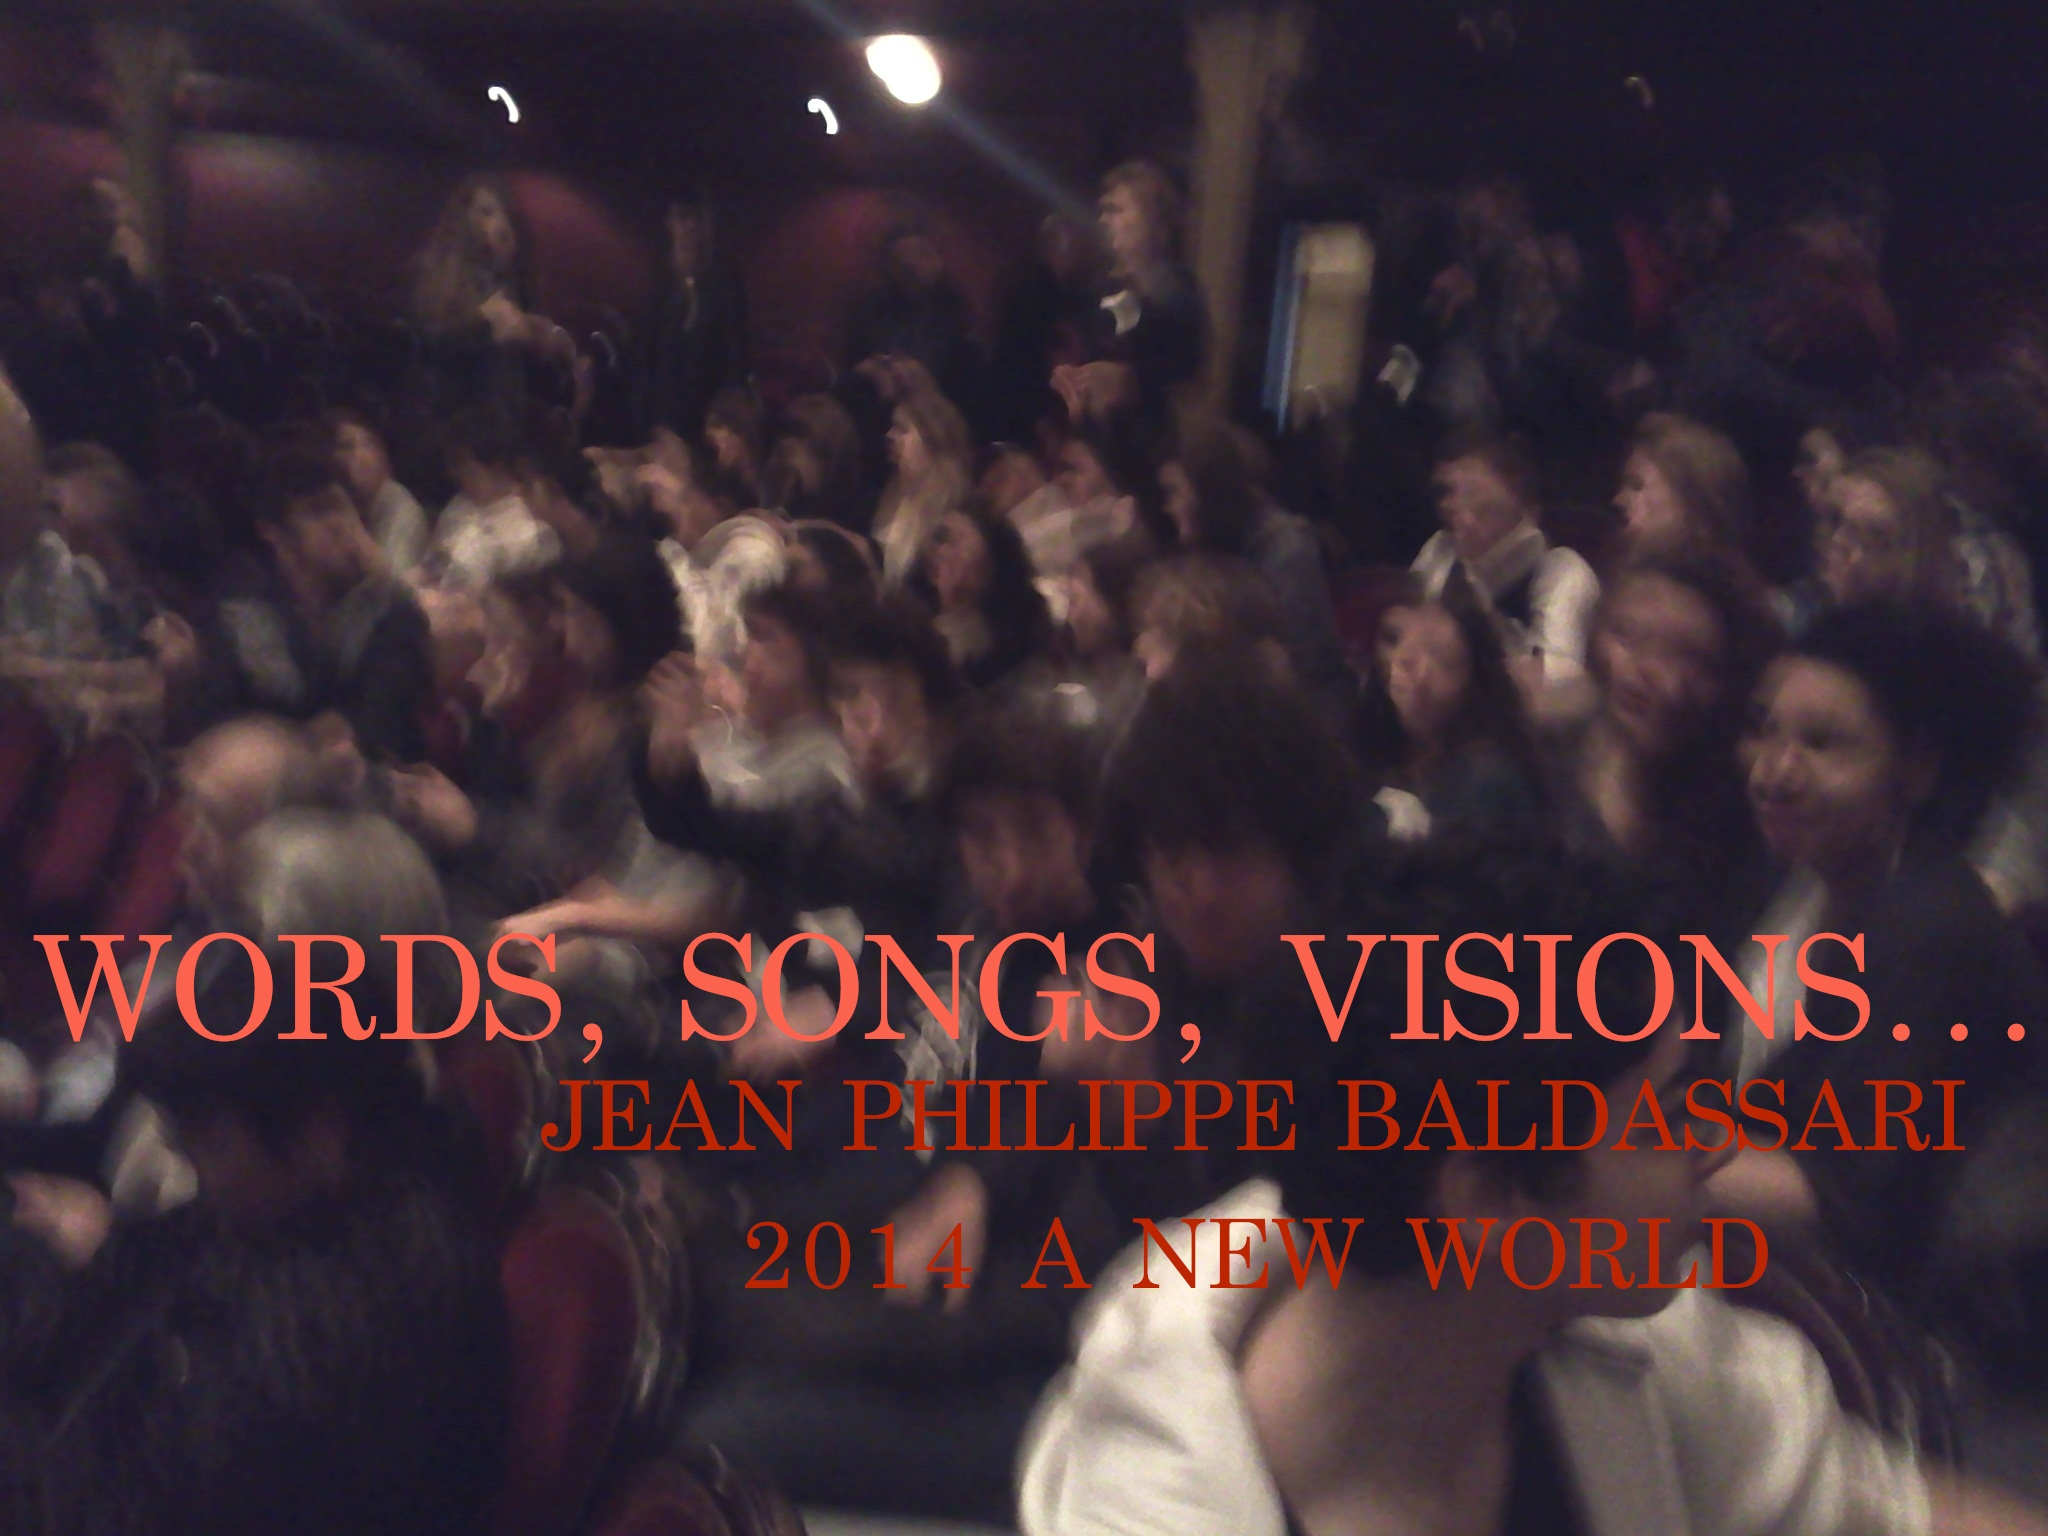 projects/words sons visions pochette.jpg